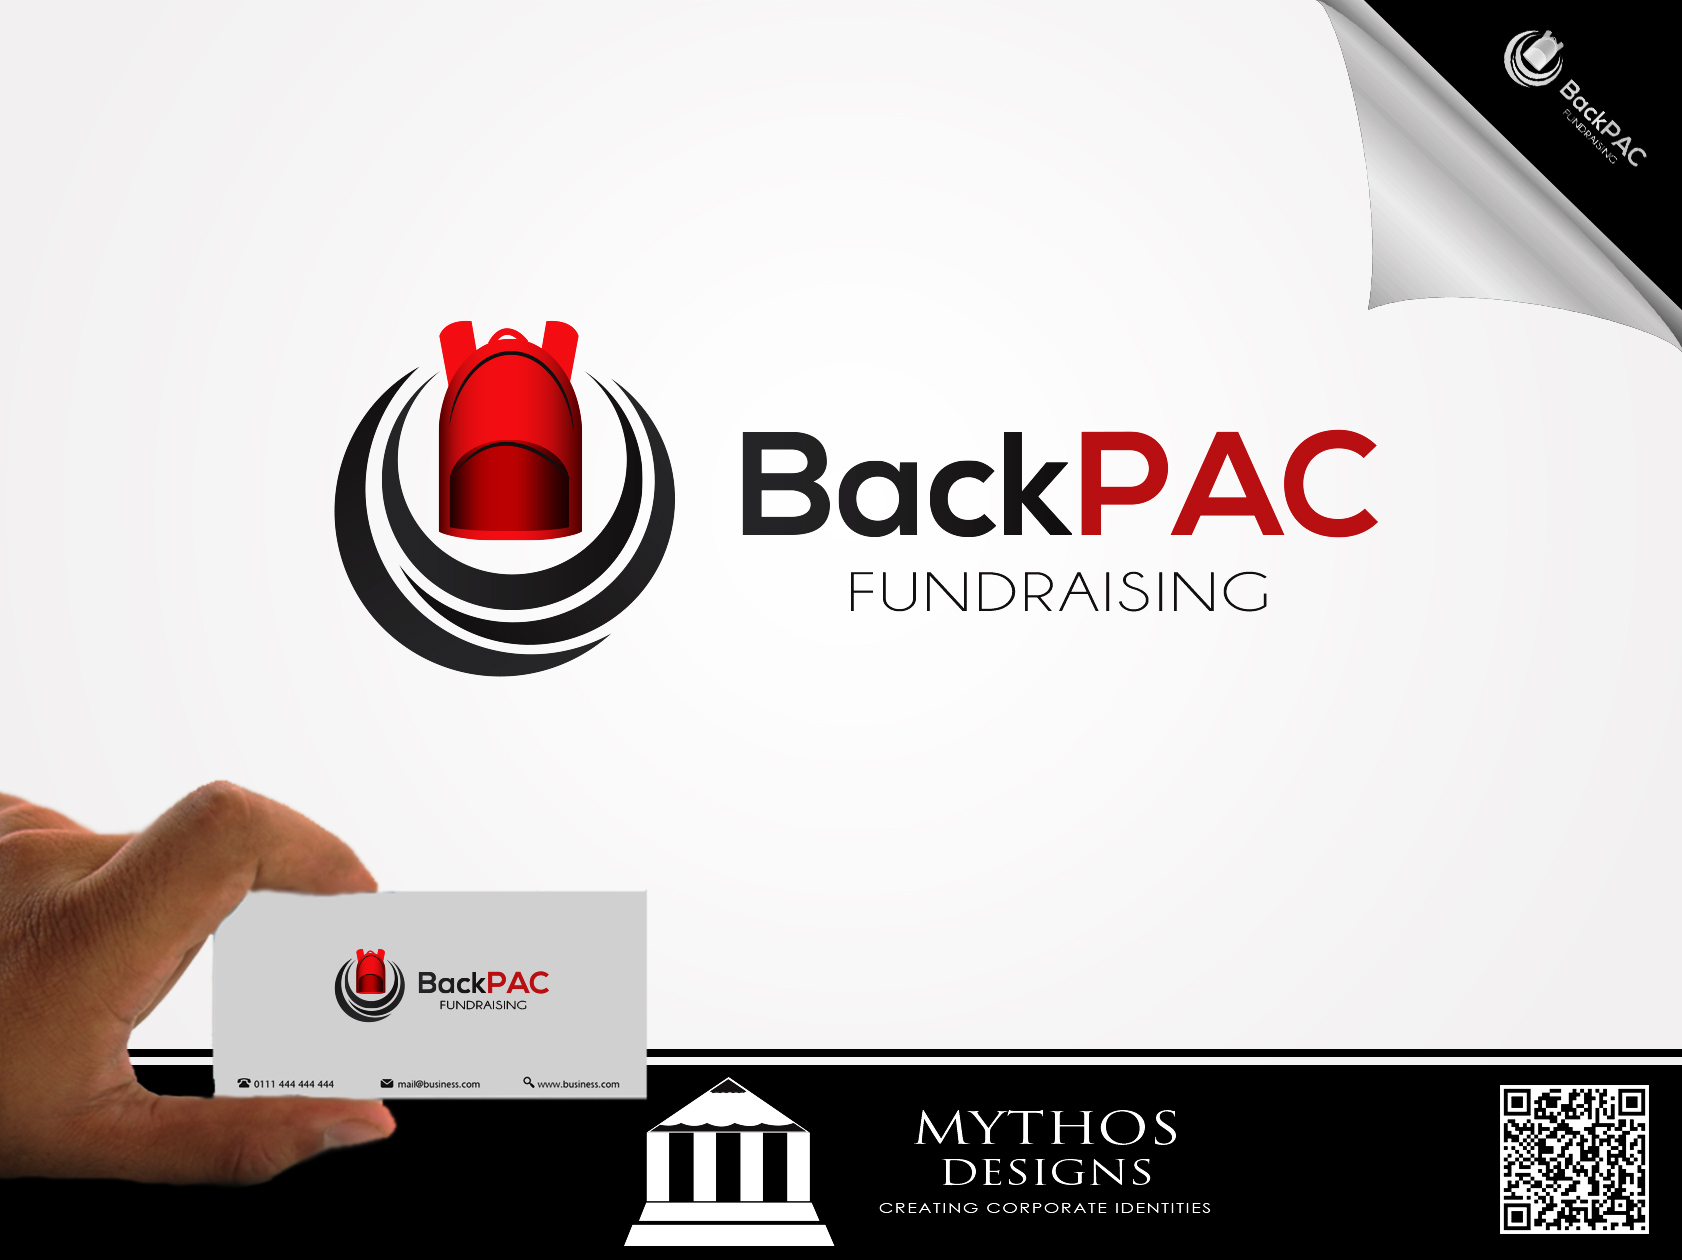 Logo Design by Mythos Designs - Entry No. 63 in the Logo Design Contest Imaginative Logo Design for BackPAC Fundraising.